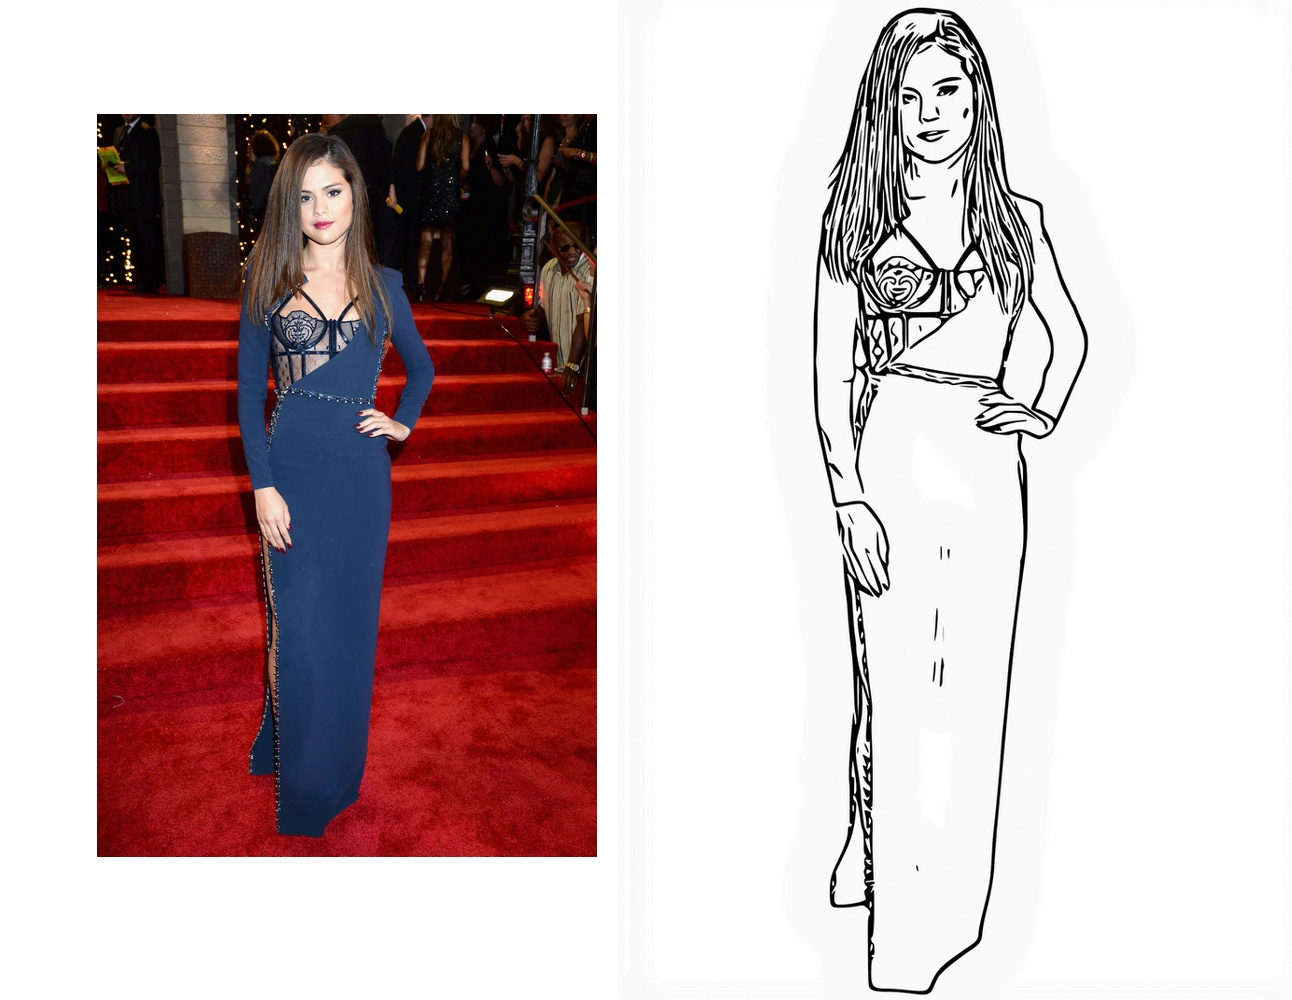 draw 3 your photo to blackwhite vector line art